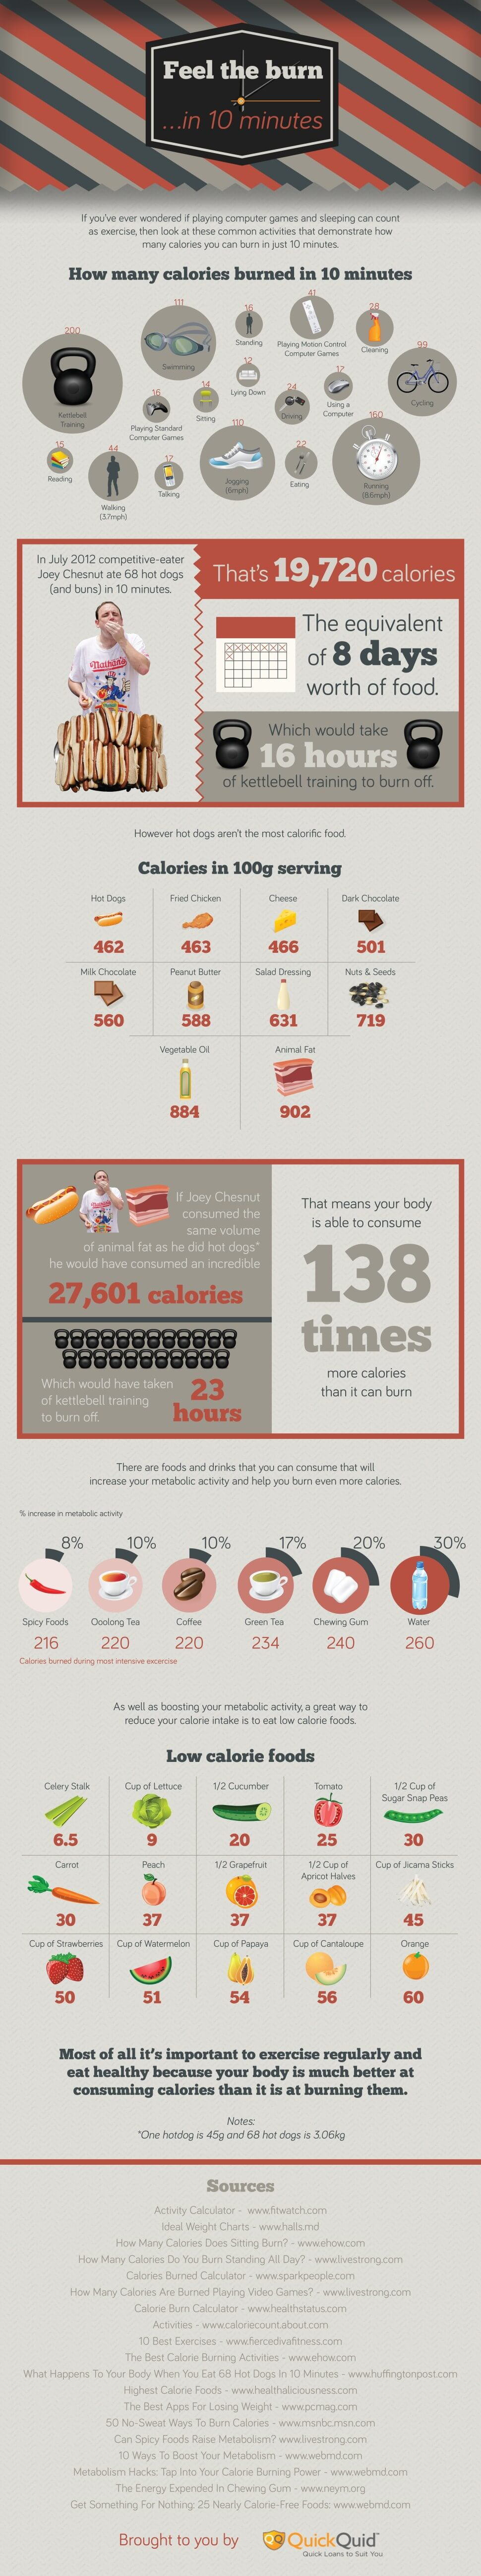 easy workout infographic